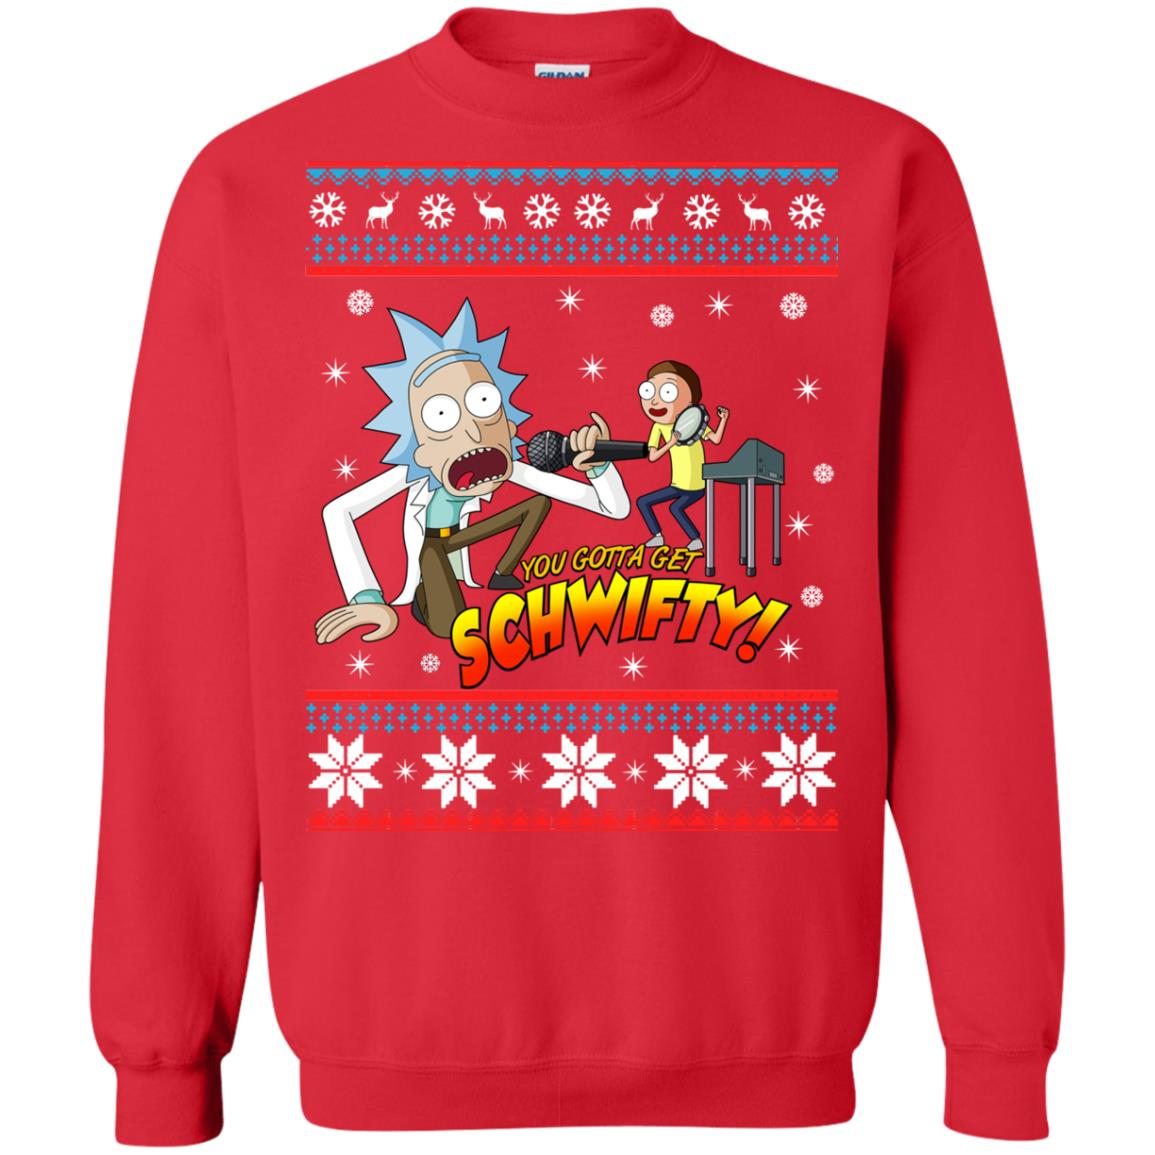 image 2417 - You gotta get Schwifty Ugly Christmas sweater, hoodie